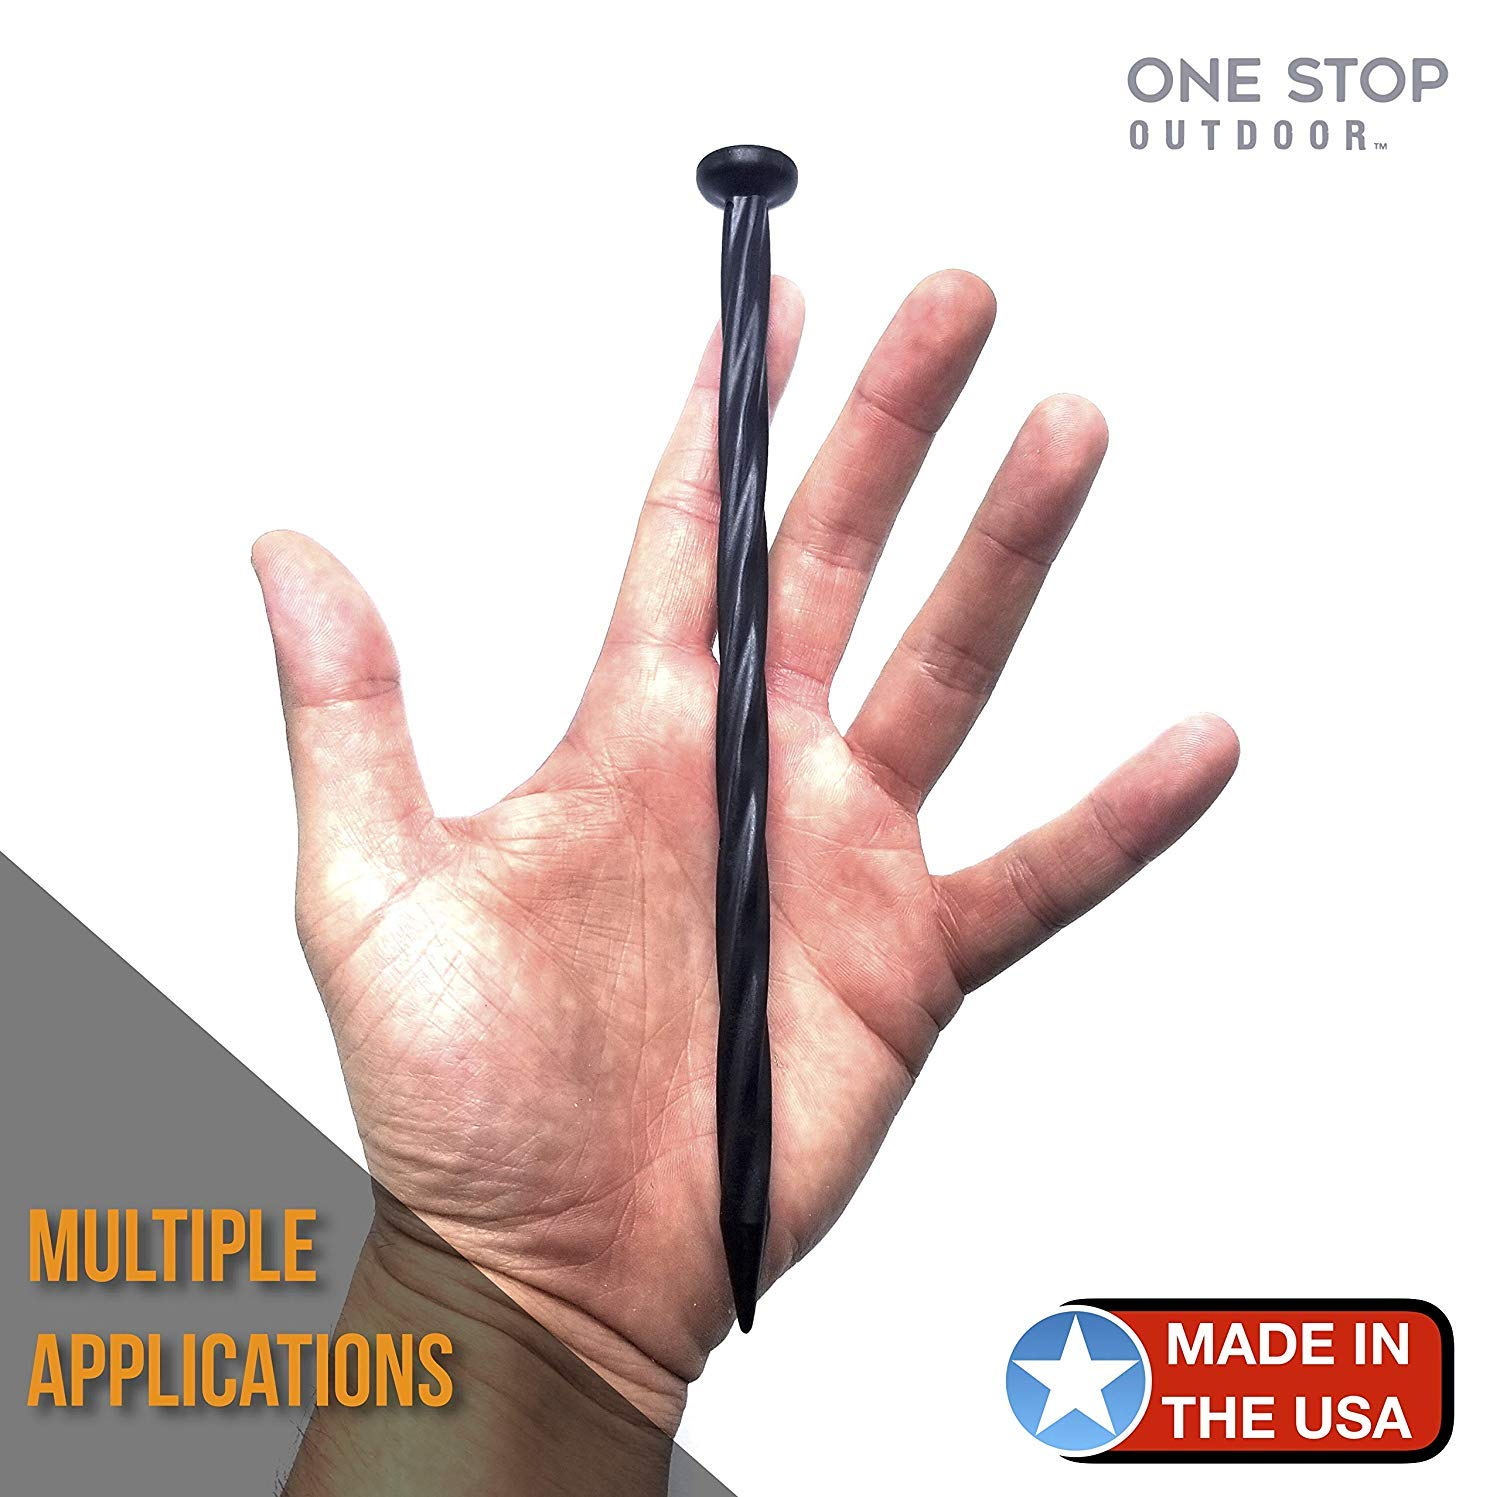 (150 Pack) USA Made - 8'' Inch Plastic Edging Nails, Spiral Nylon Landscape Stake Nail / Anchoring Spikes For Paver Edging, Weed Barrier, Artificial Turf (Fits Most Brands Dimex EasyFlex Proflex) (150) by One Stop Outdoor (Image #4)